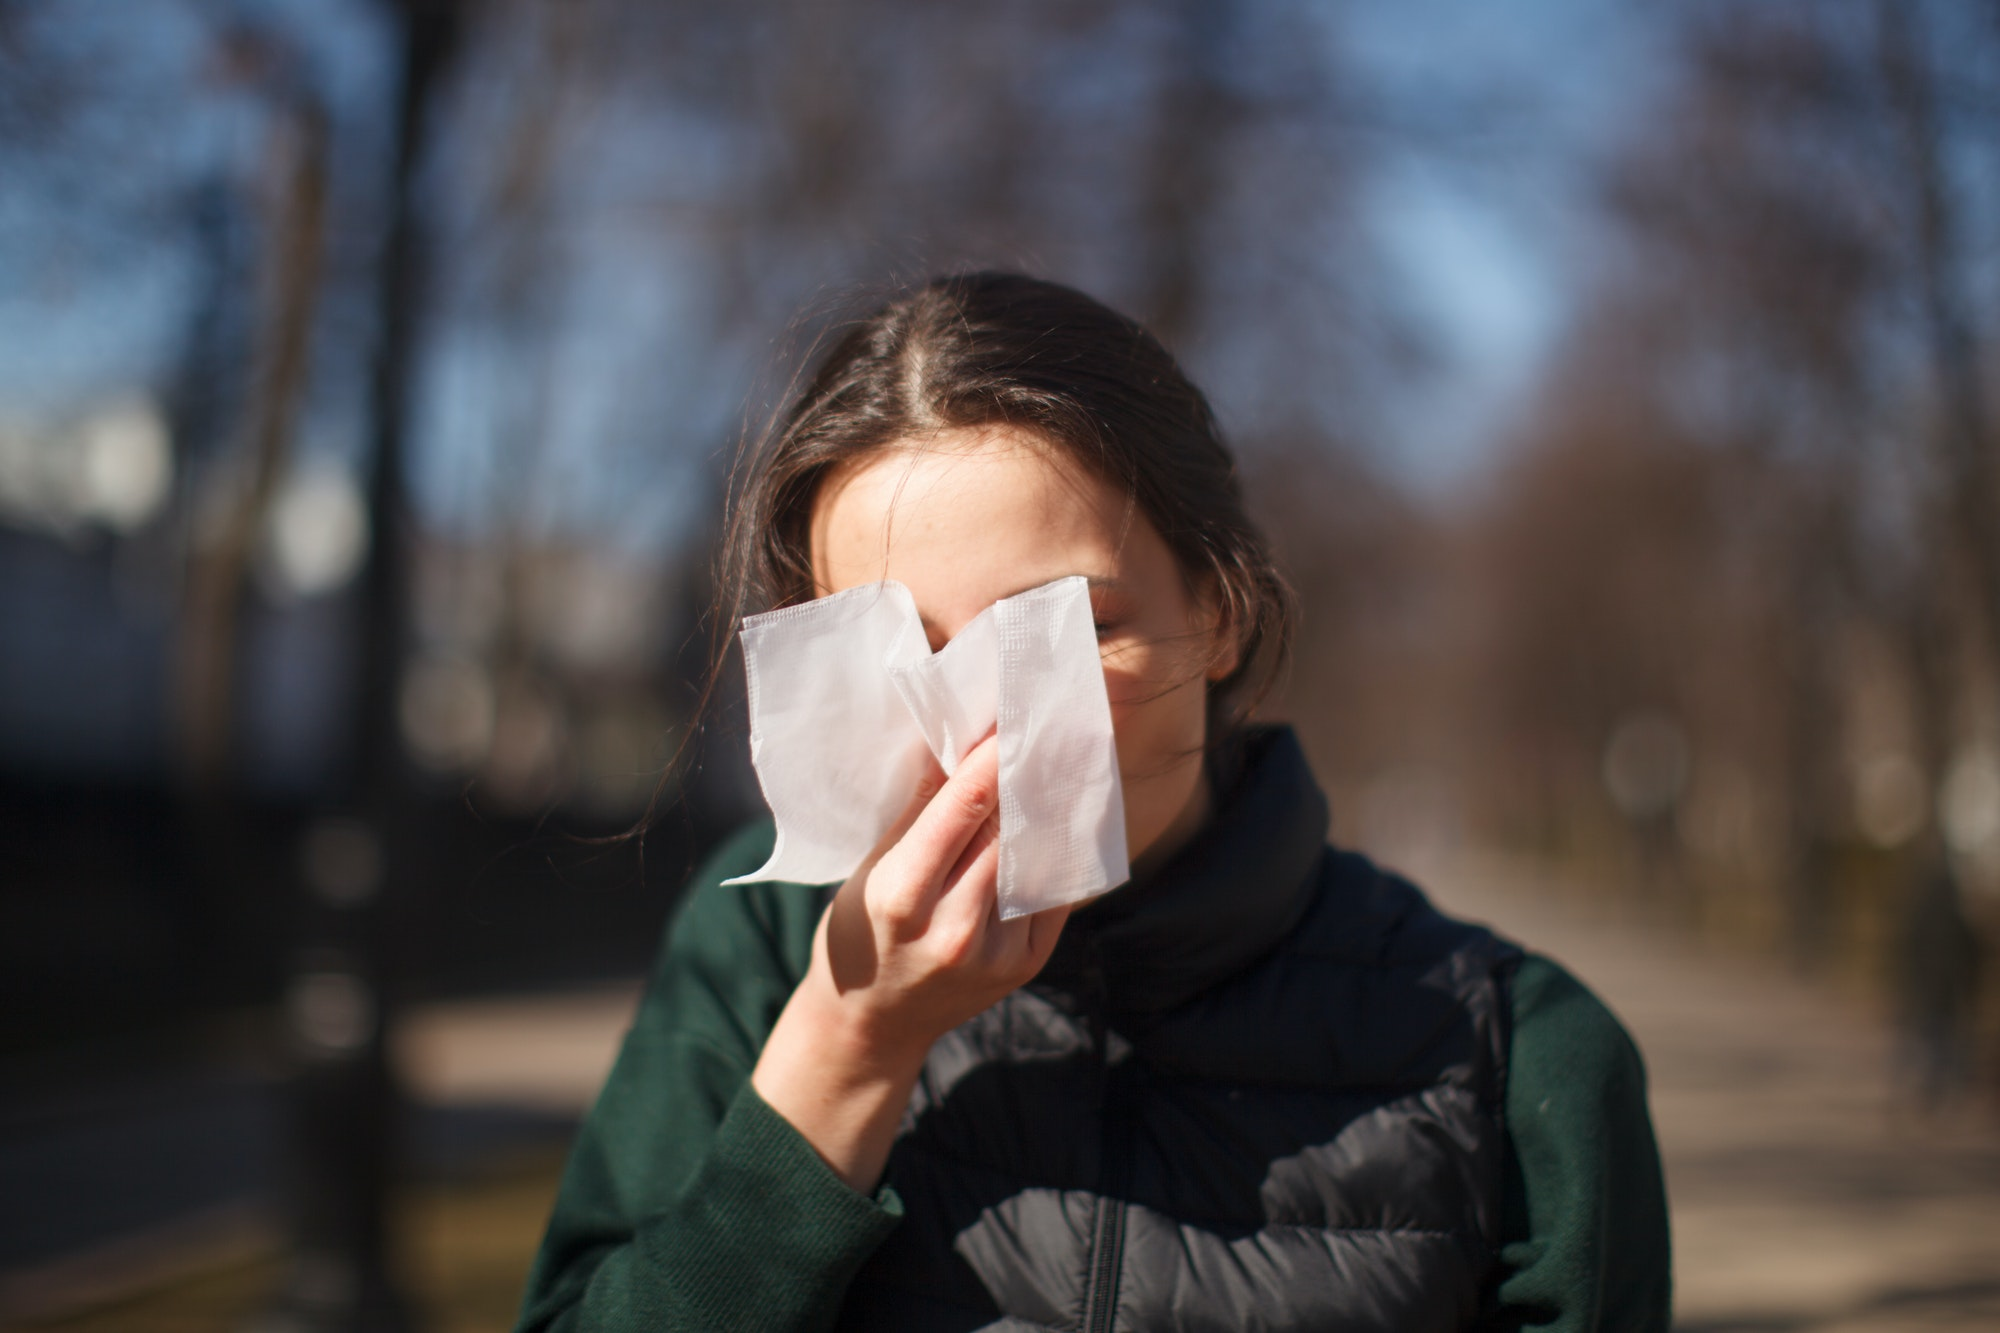 female outdoor sneeze and cover her face with napkin